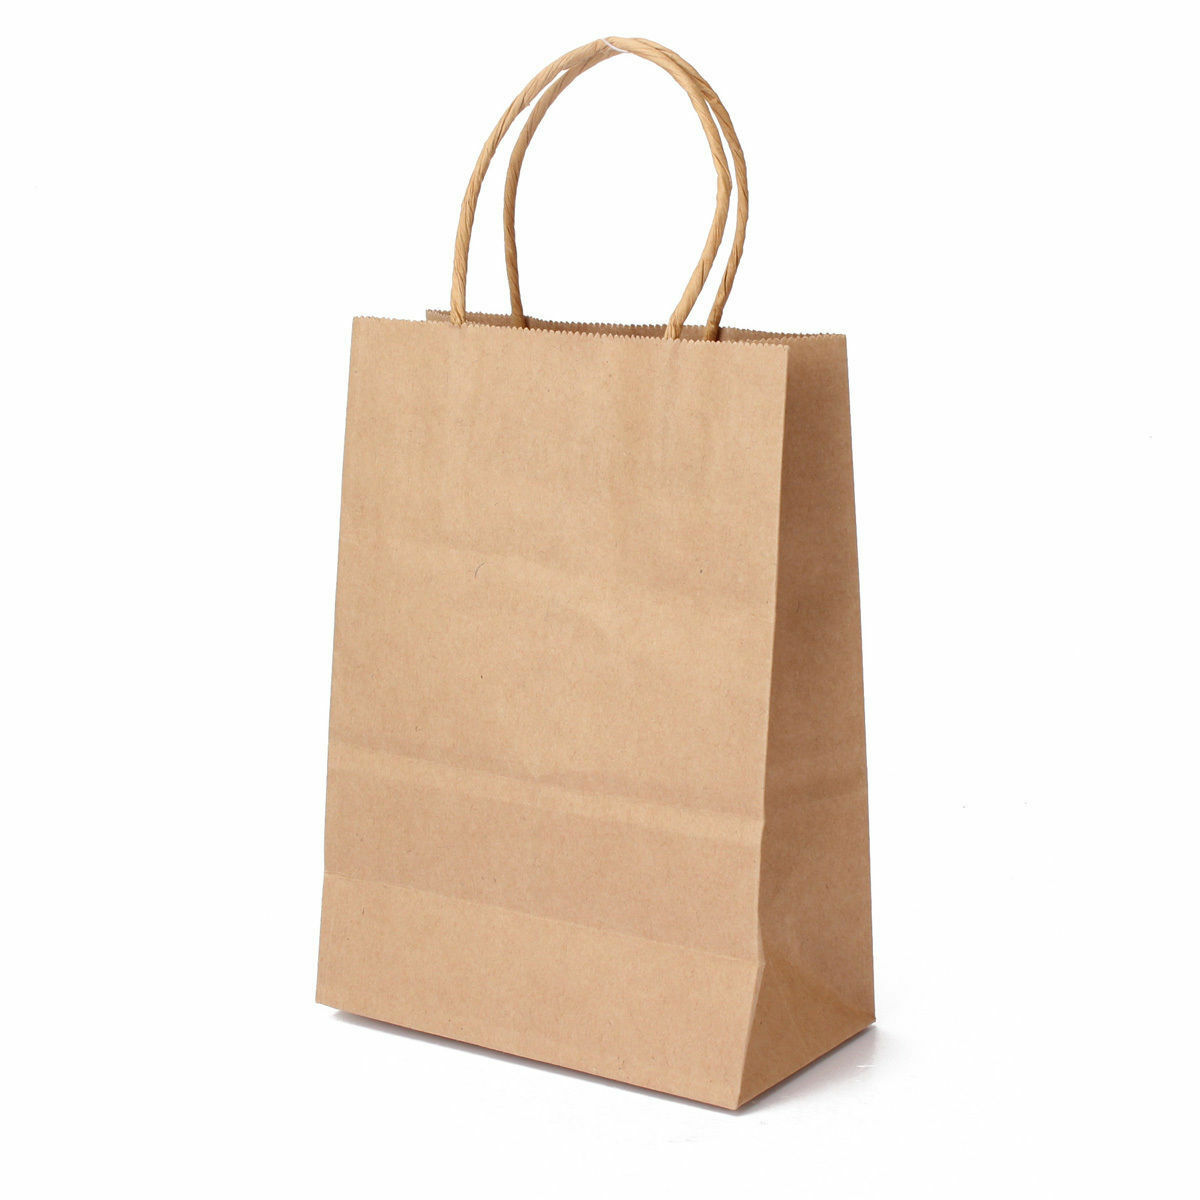 100 Pcs 5.25x3.75x8 Small Brown Kraft Paper Bags with Handle